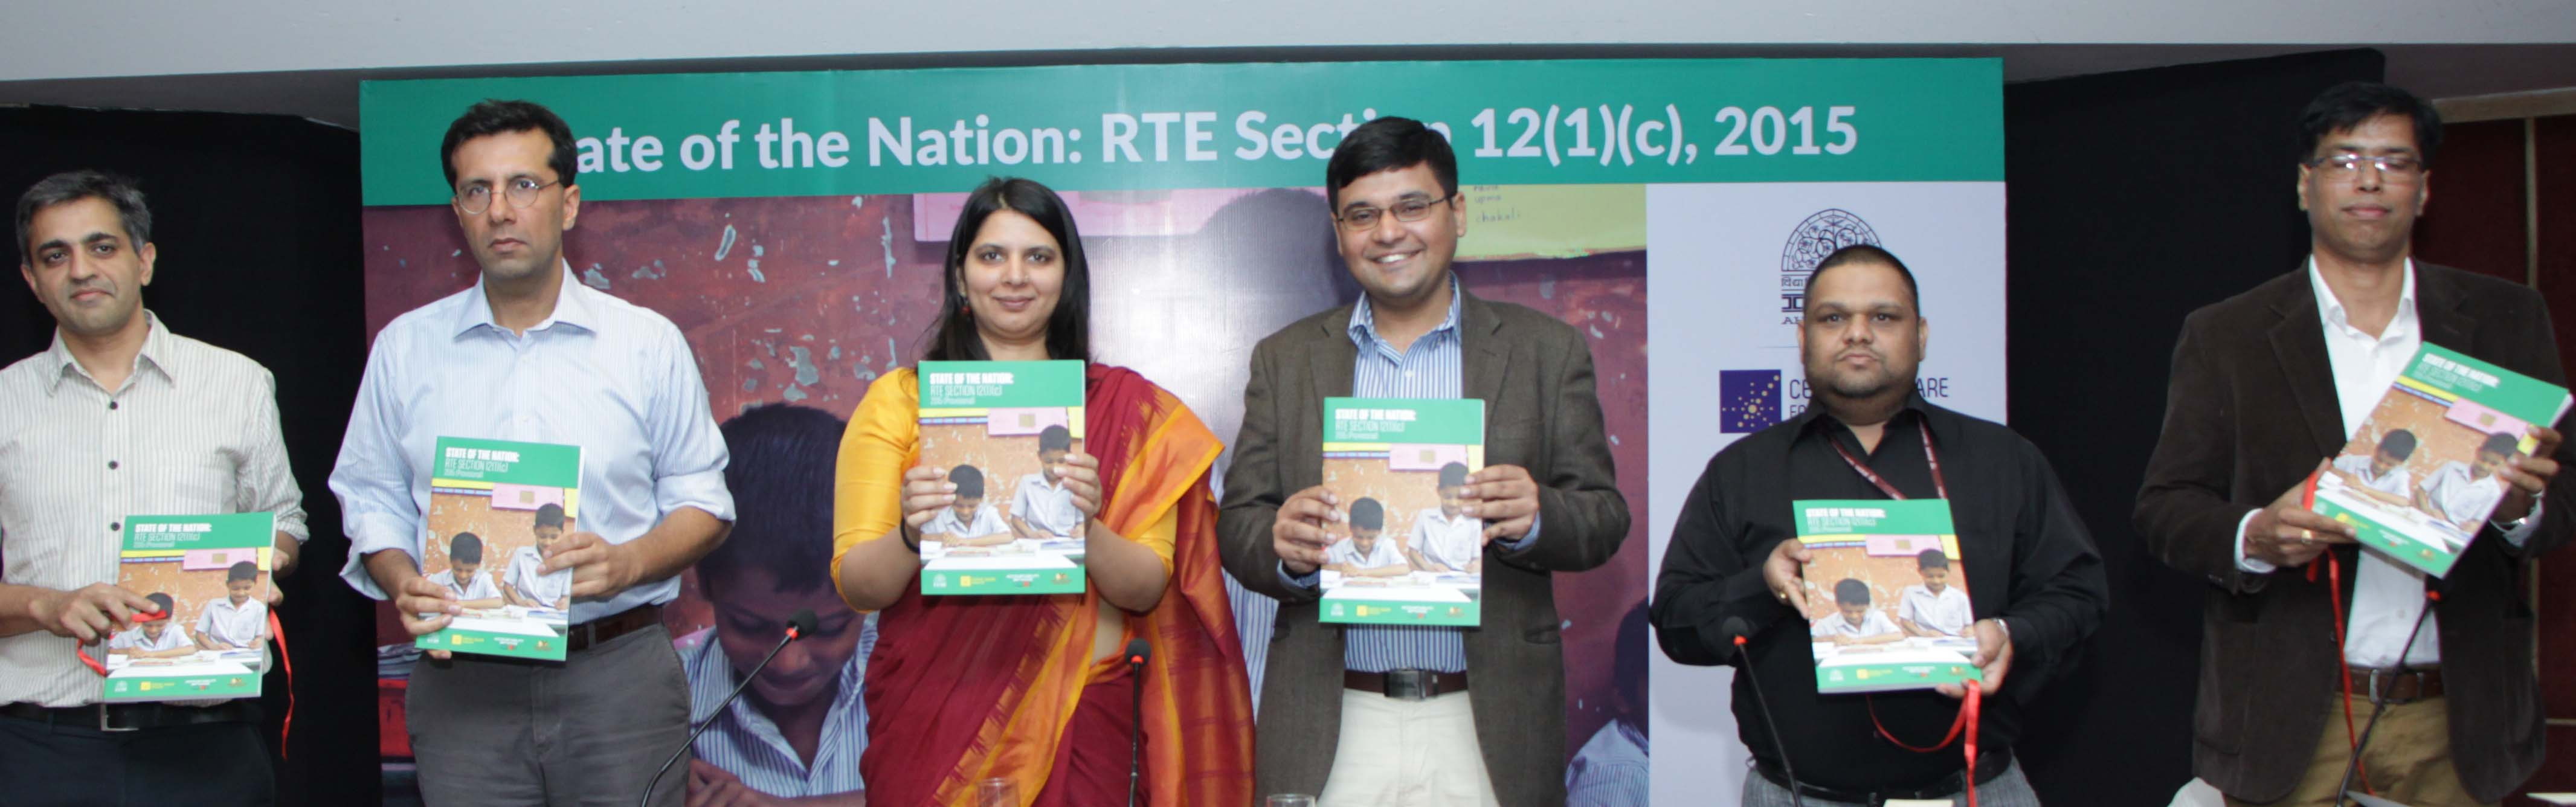 Launch of State of the Nation-RTE Section 12(1)(c) report at the Annual Summit 2016 by report partners and speakers